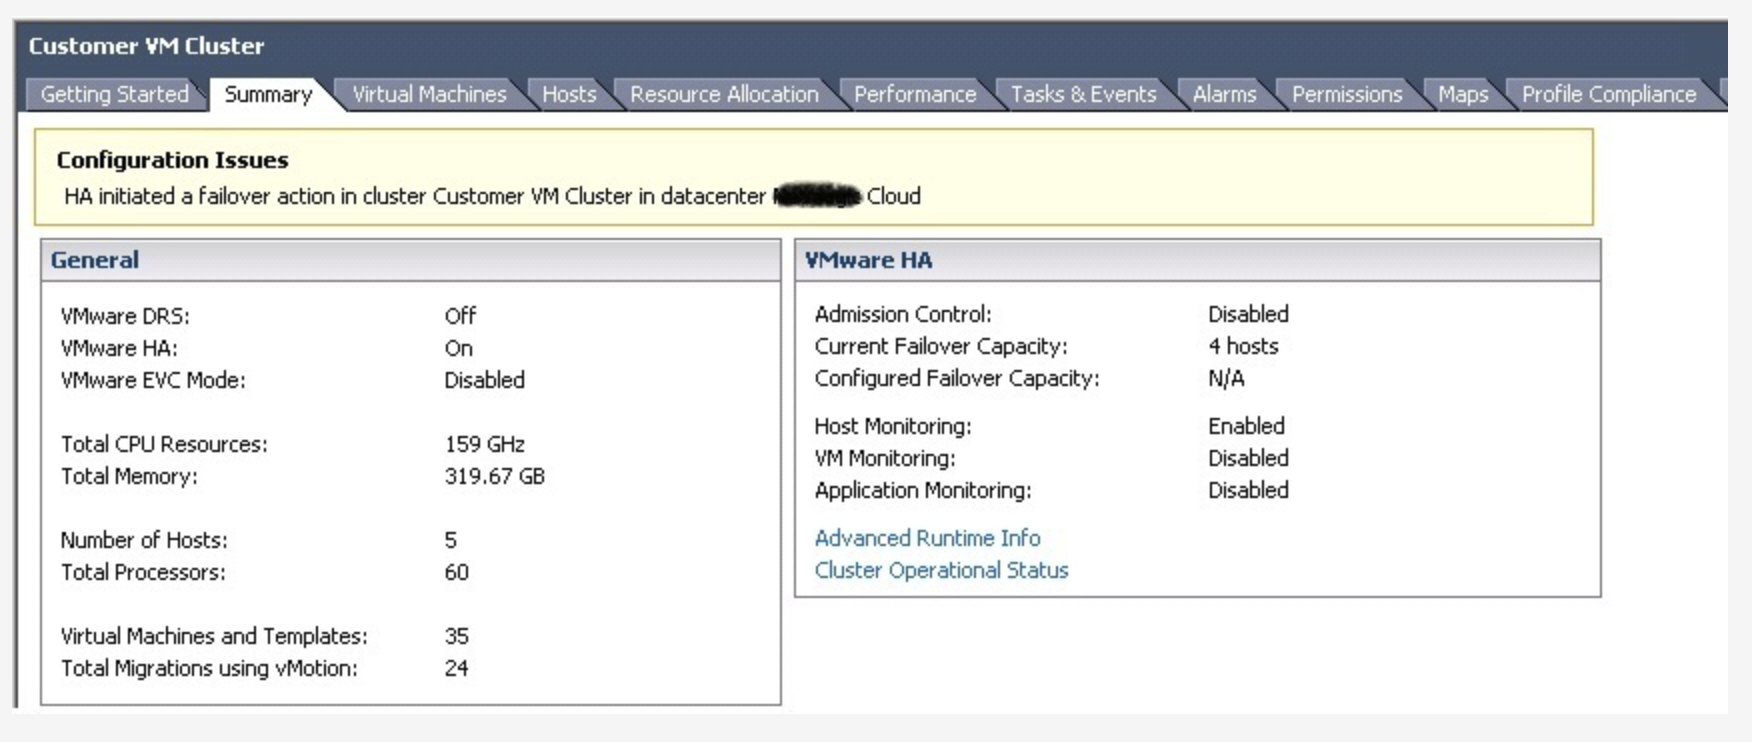 Configuration Issues: HA initiated a failover action in cluster %Cluster_Name% in datacenter %Datacenter_Name%